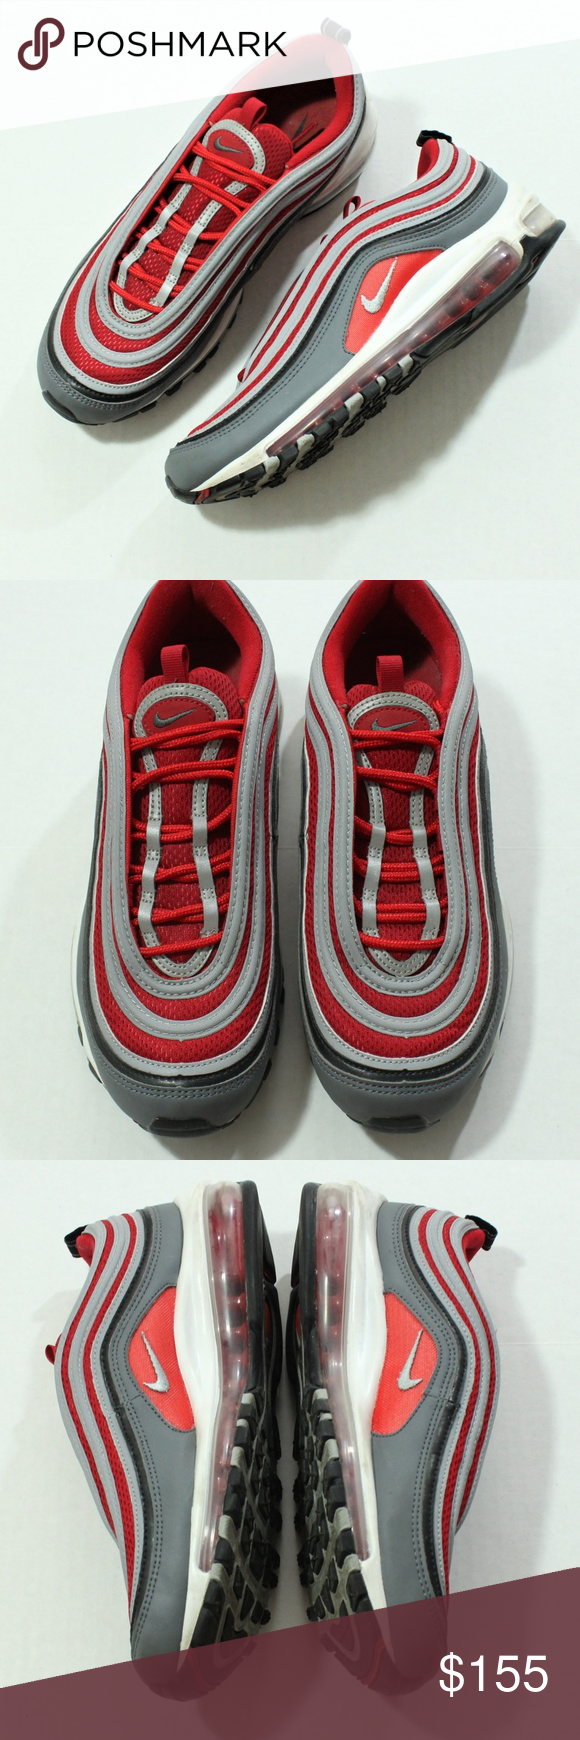 Nike Air Max 97 Dark Grey, Wolf Grey, Gym Red 921826 007 Women's Running Shoes Sneakers